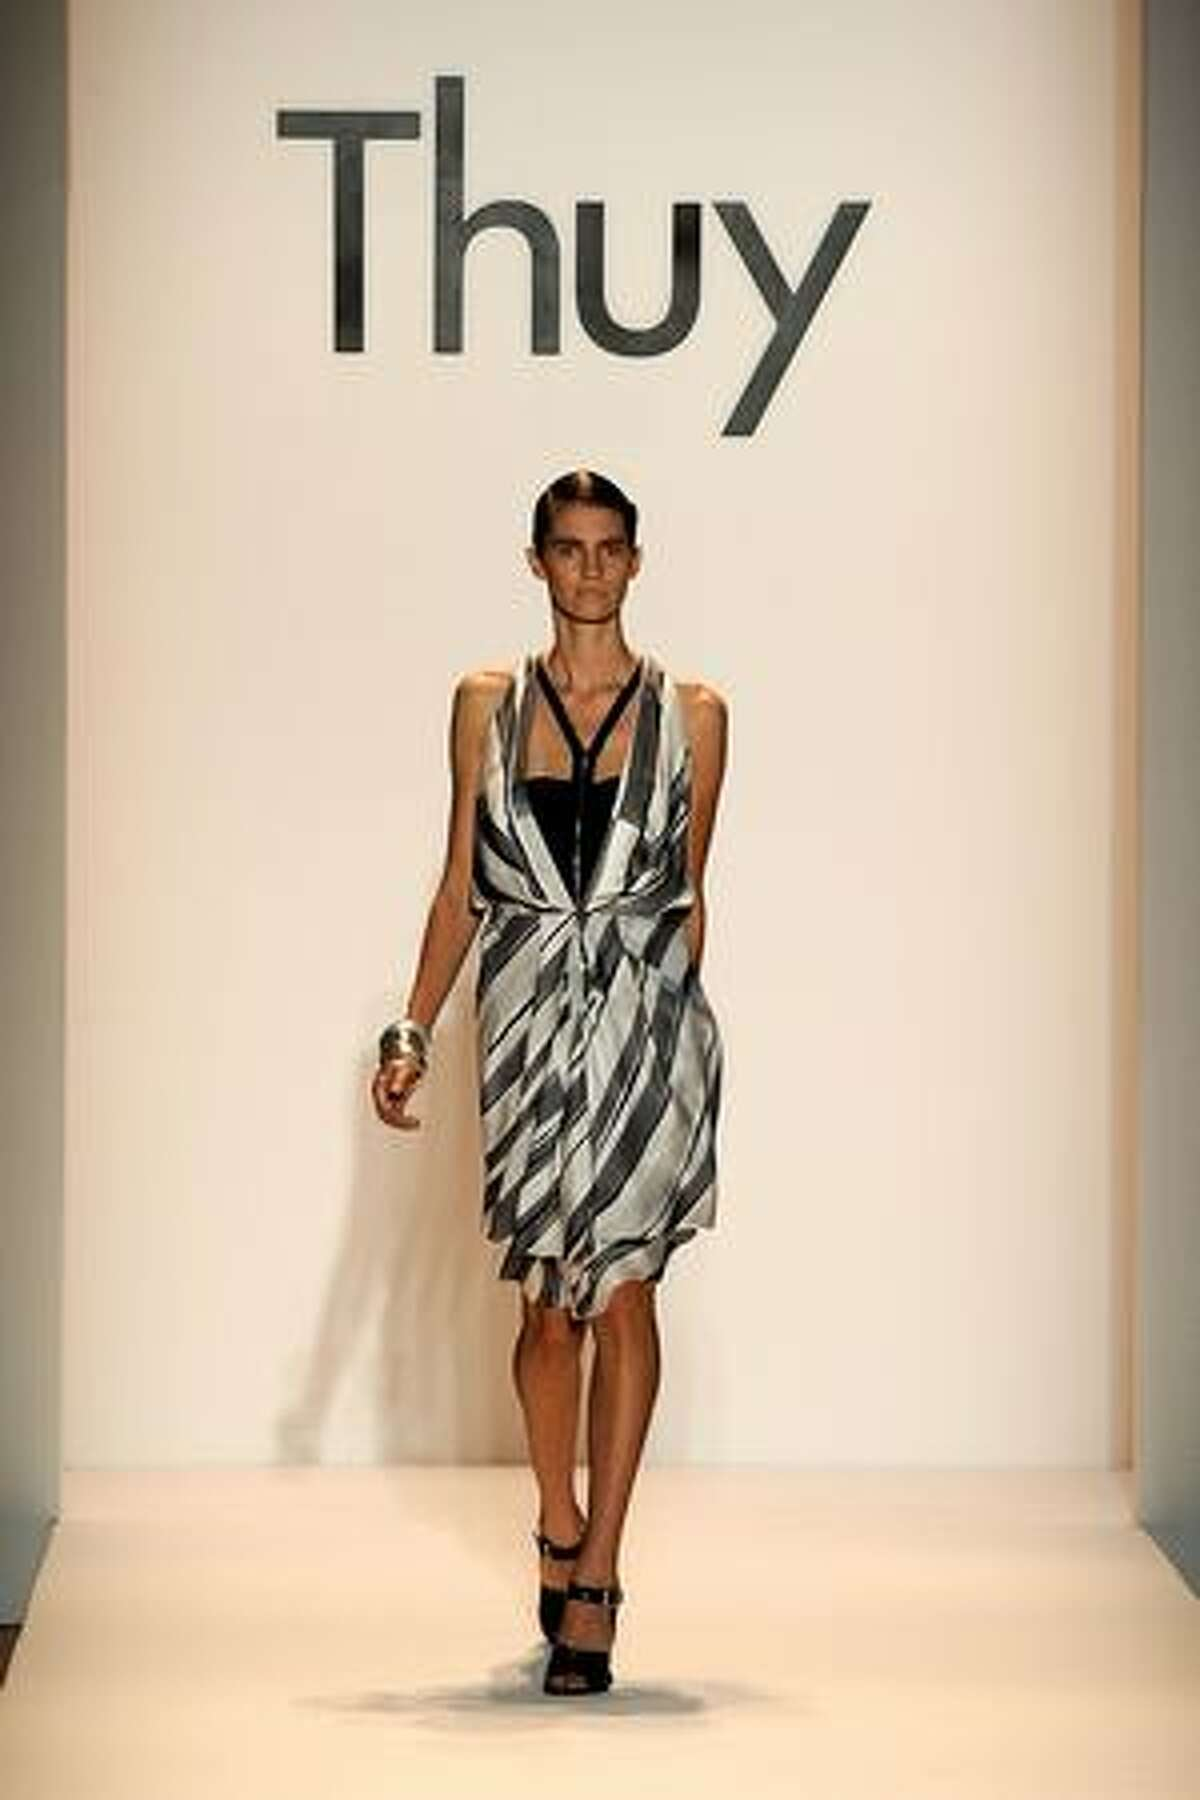 A model walks the runway at the Thuy Spring 2010 Fashion Show at the Salon at Bryant Park on Sunday in New York City.